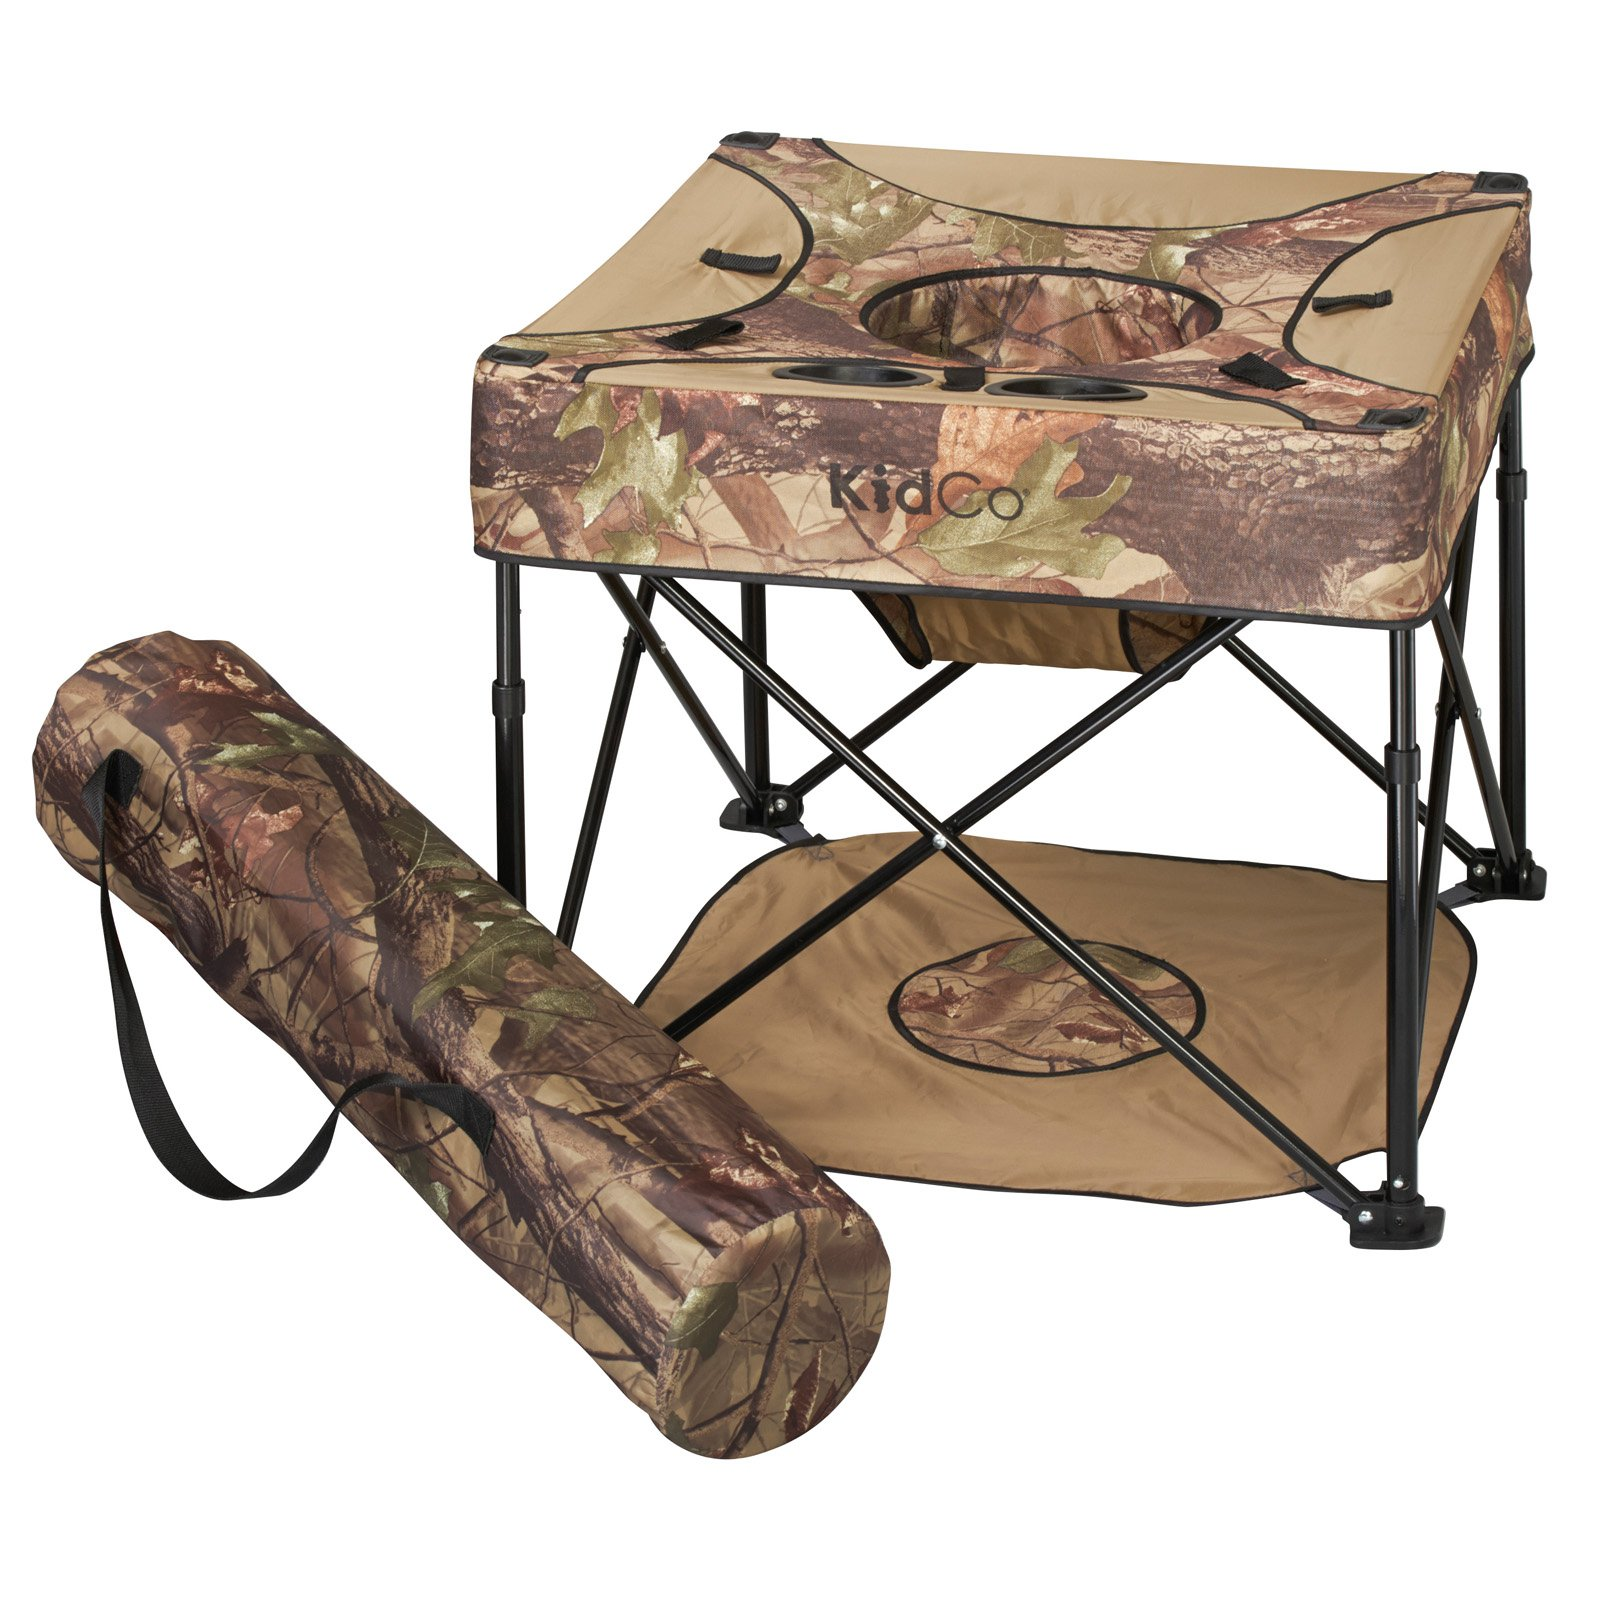 KidCo Go-Pod Portable Activity Center, Camo